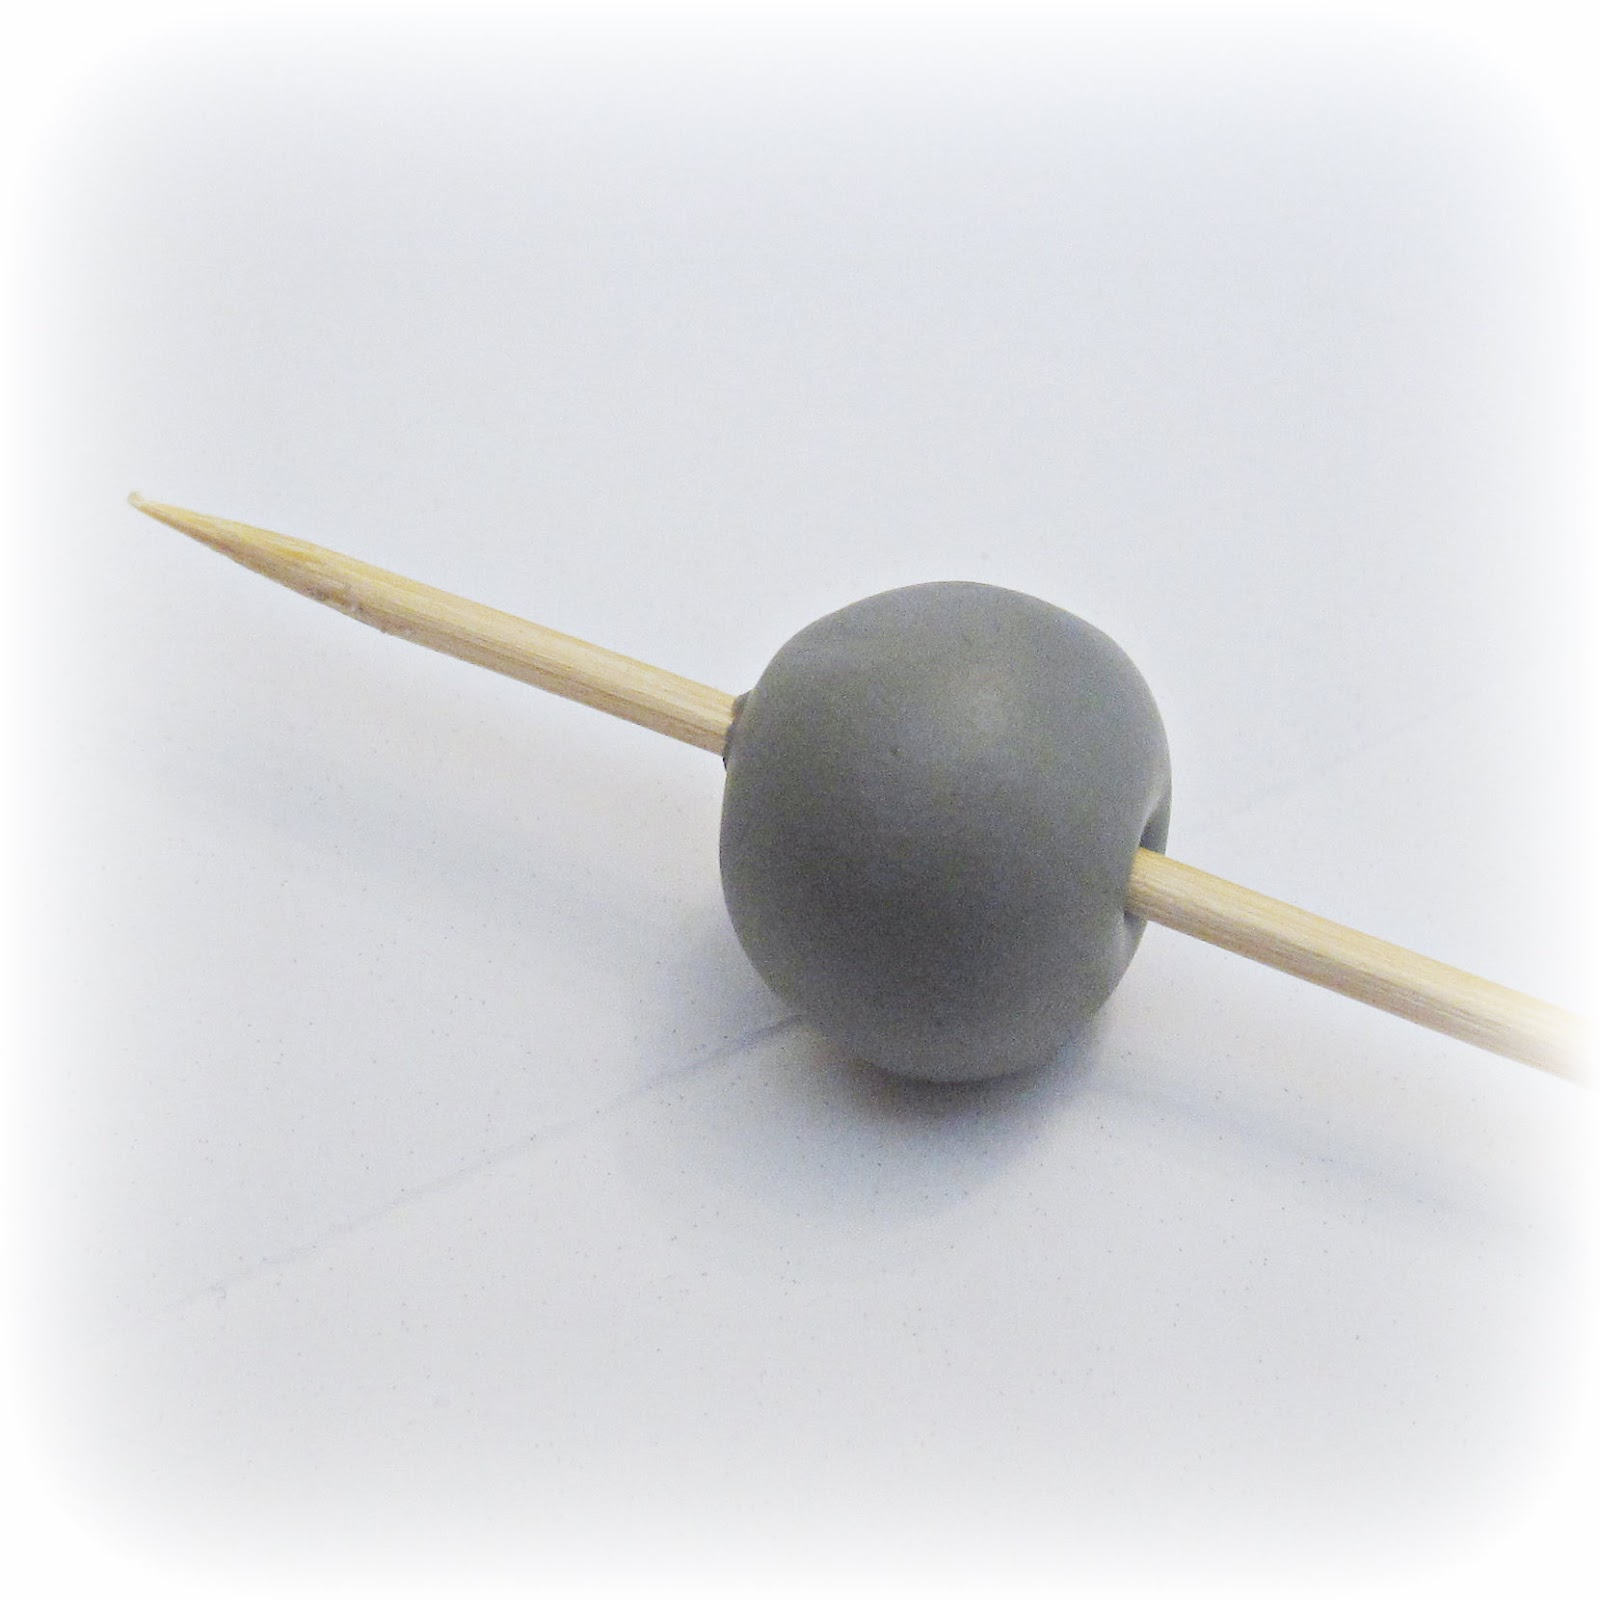 image diy gumball necklace sculpey polymer clay use a skewer to make a hole in your bead